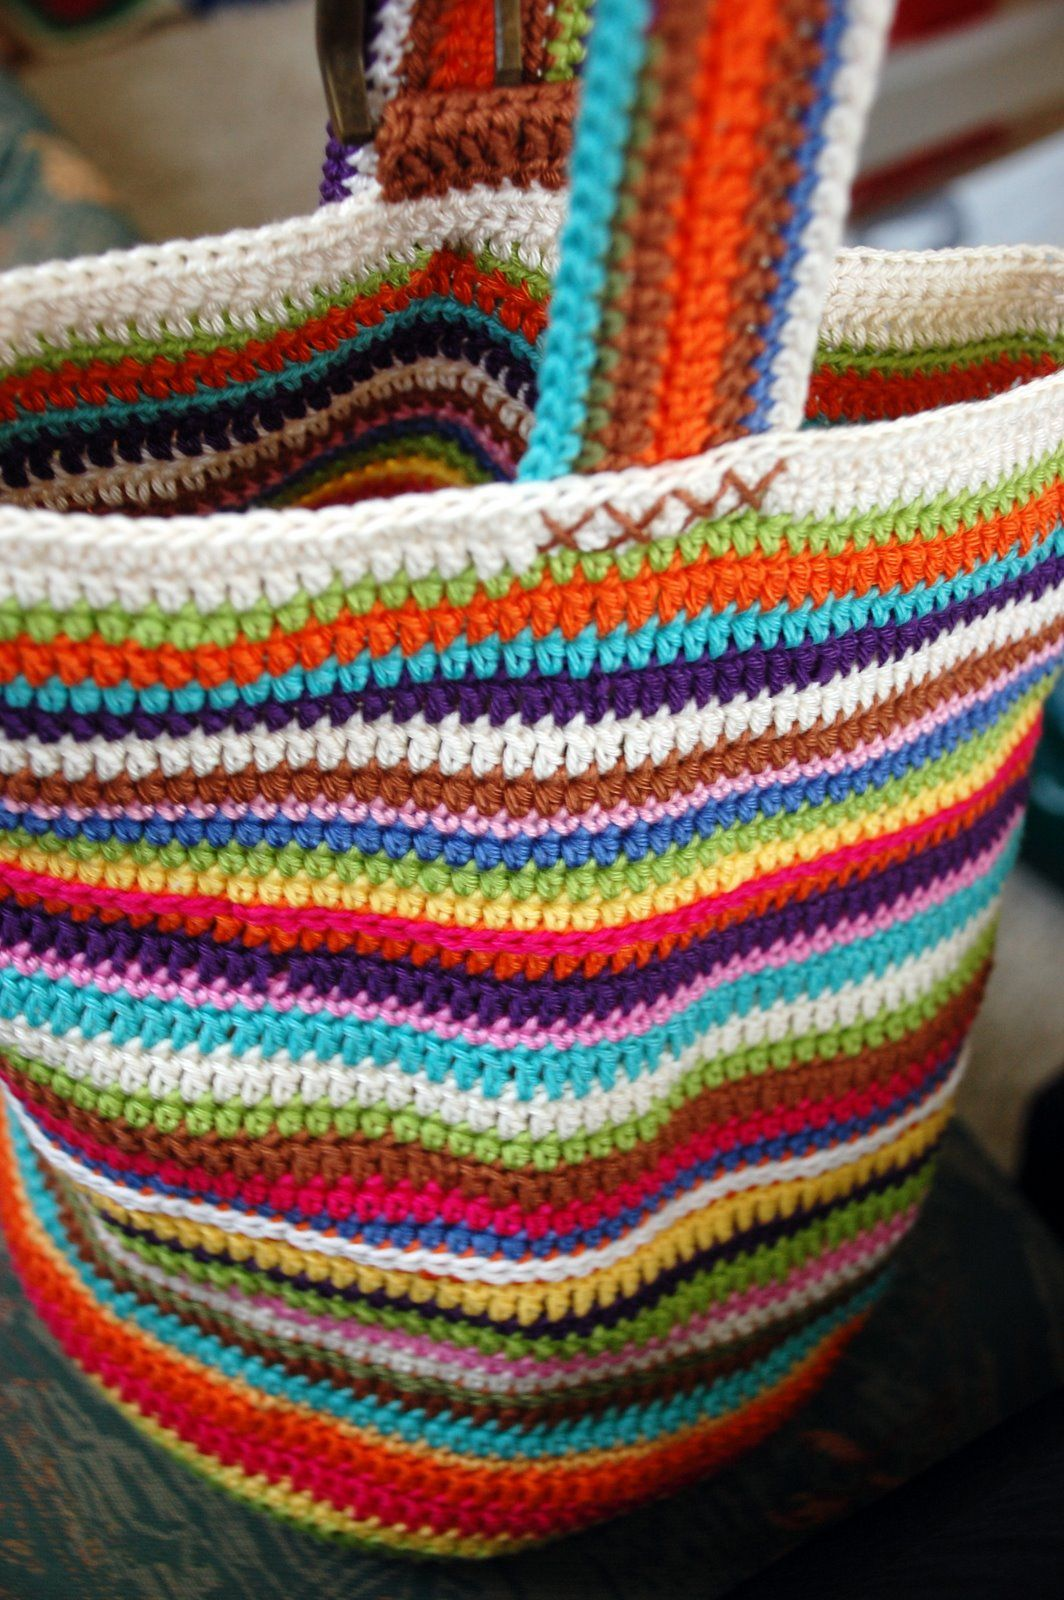 Knitting and some more free patterns colourful cotton bag knitting and some more free patterns colourful cotton bag this is a crocheted bag free pattern reminds me of lucy attic bag bankloansurffo Gallery